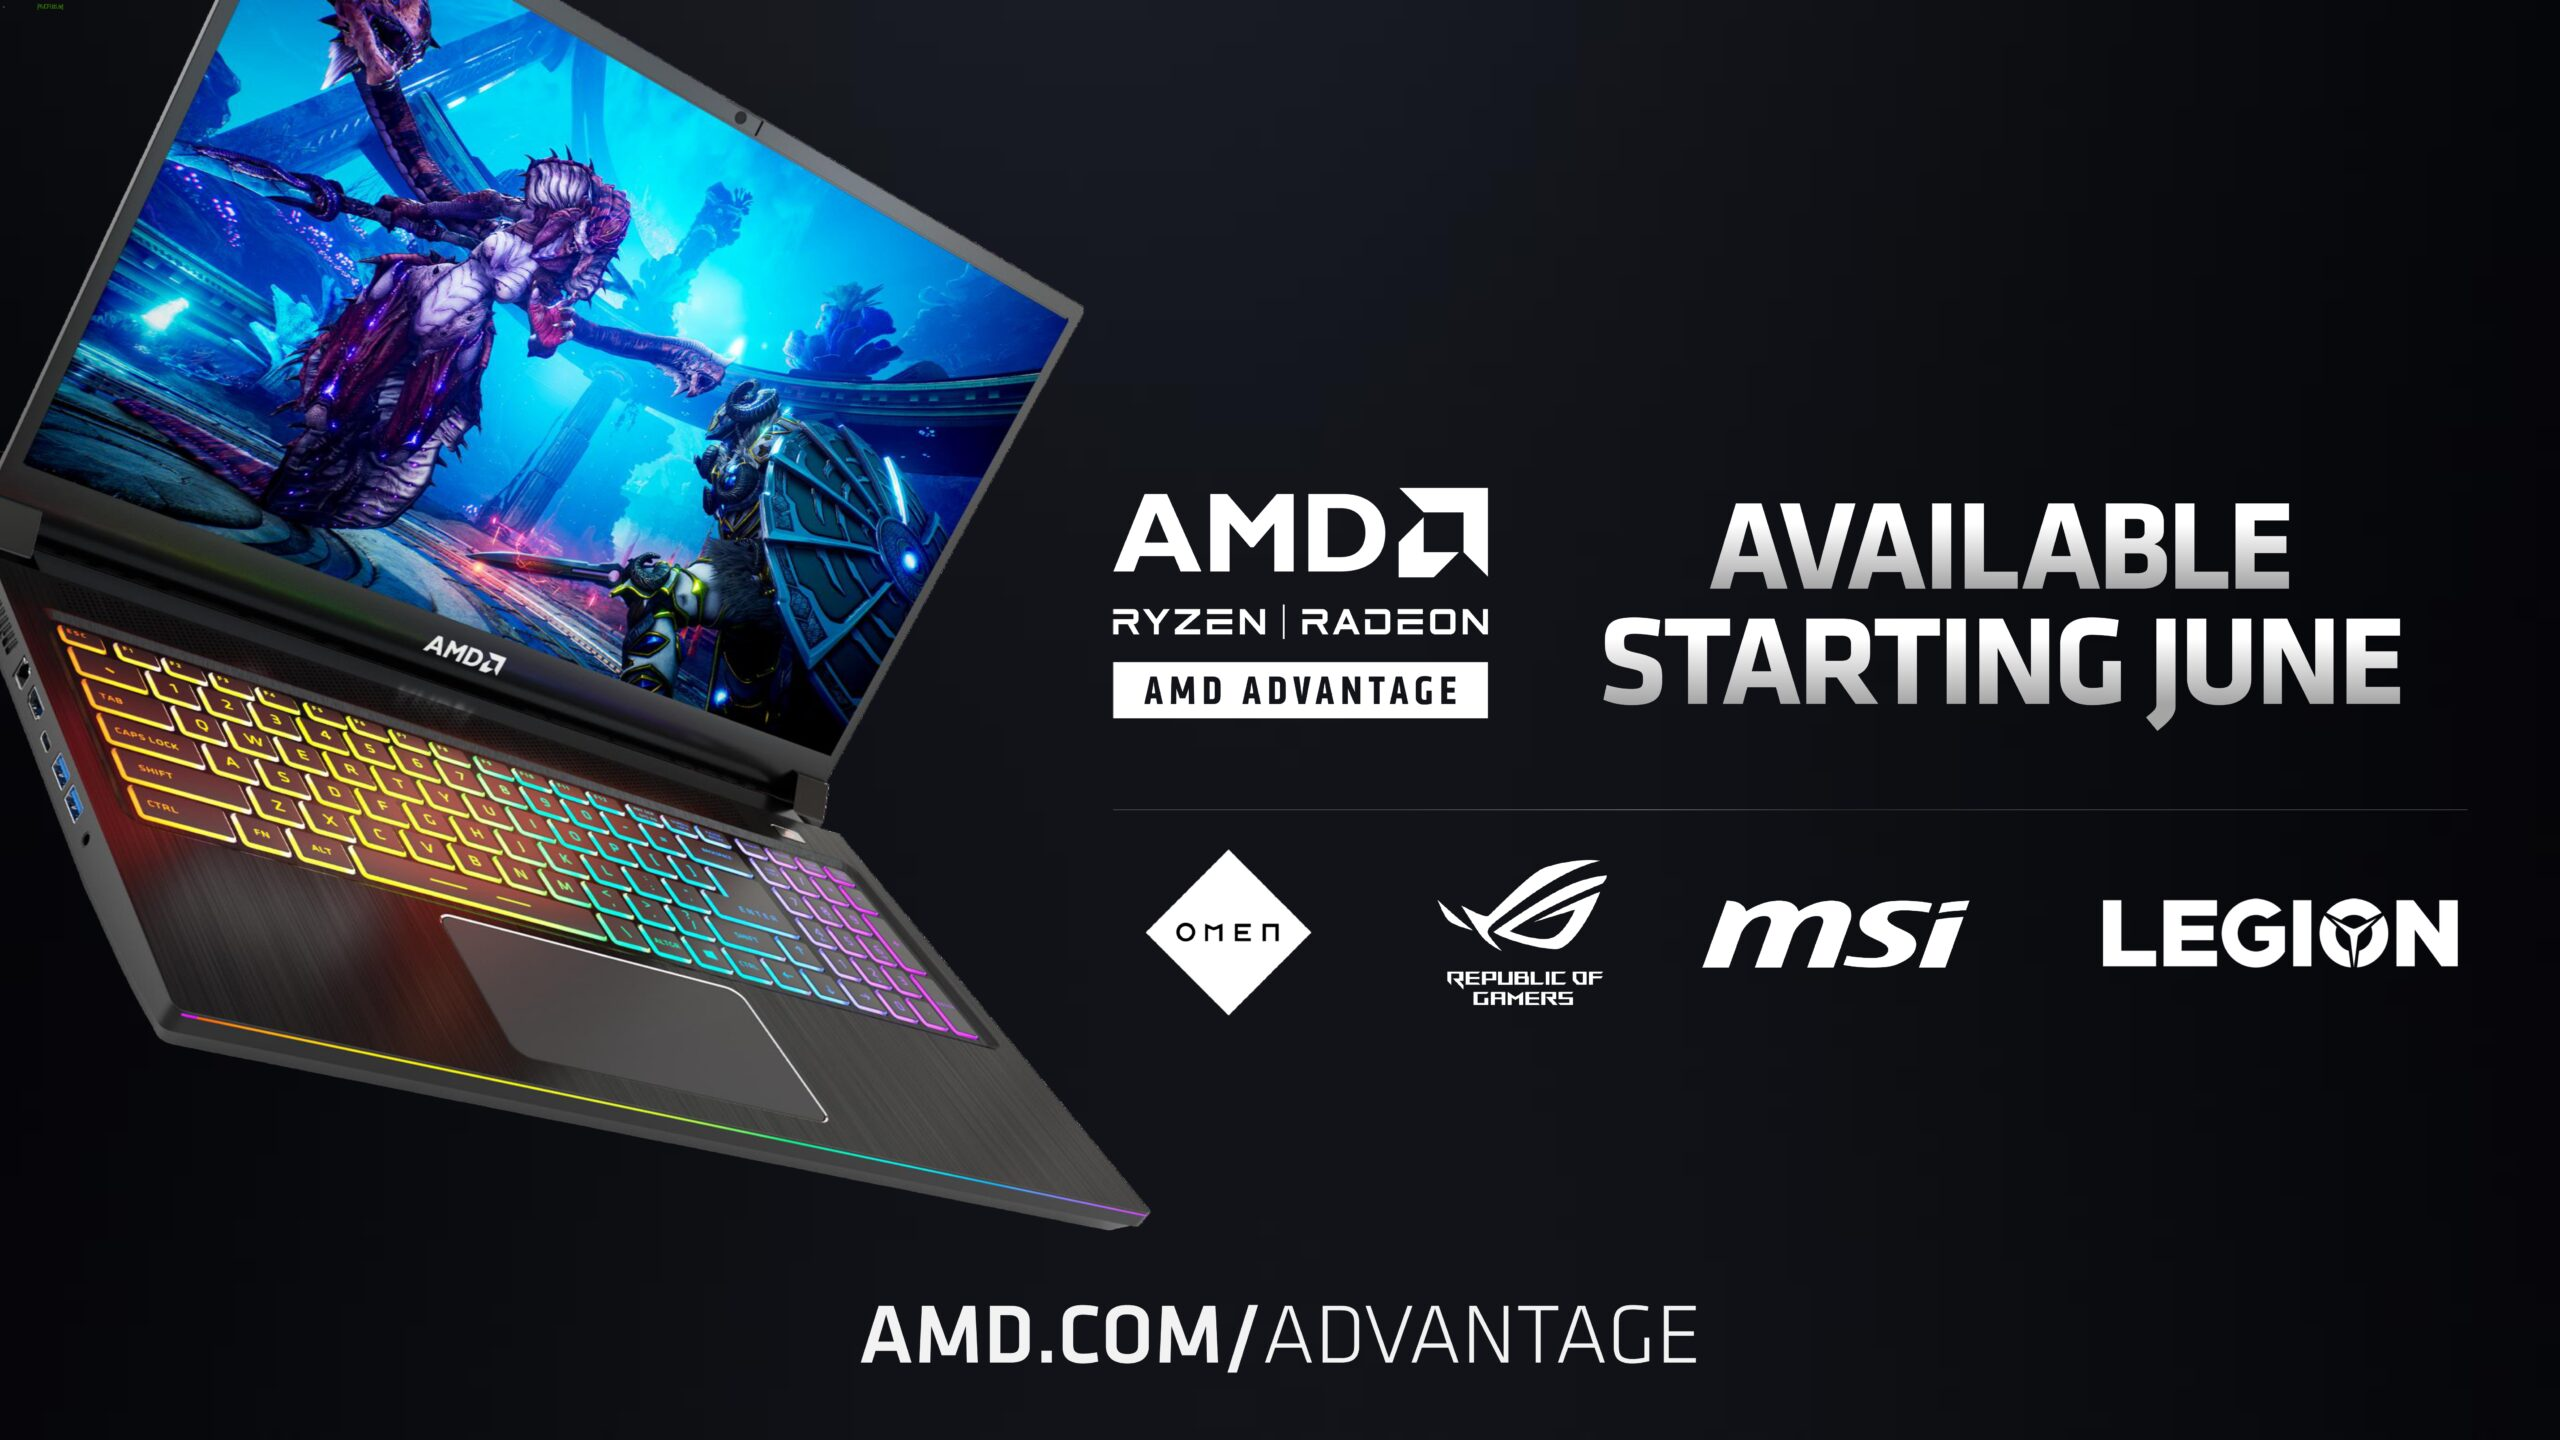 AMD Radeon RX 6600M Is Spotted Inside The Lenovo Legion 5 Gaming Laptop